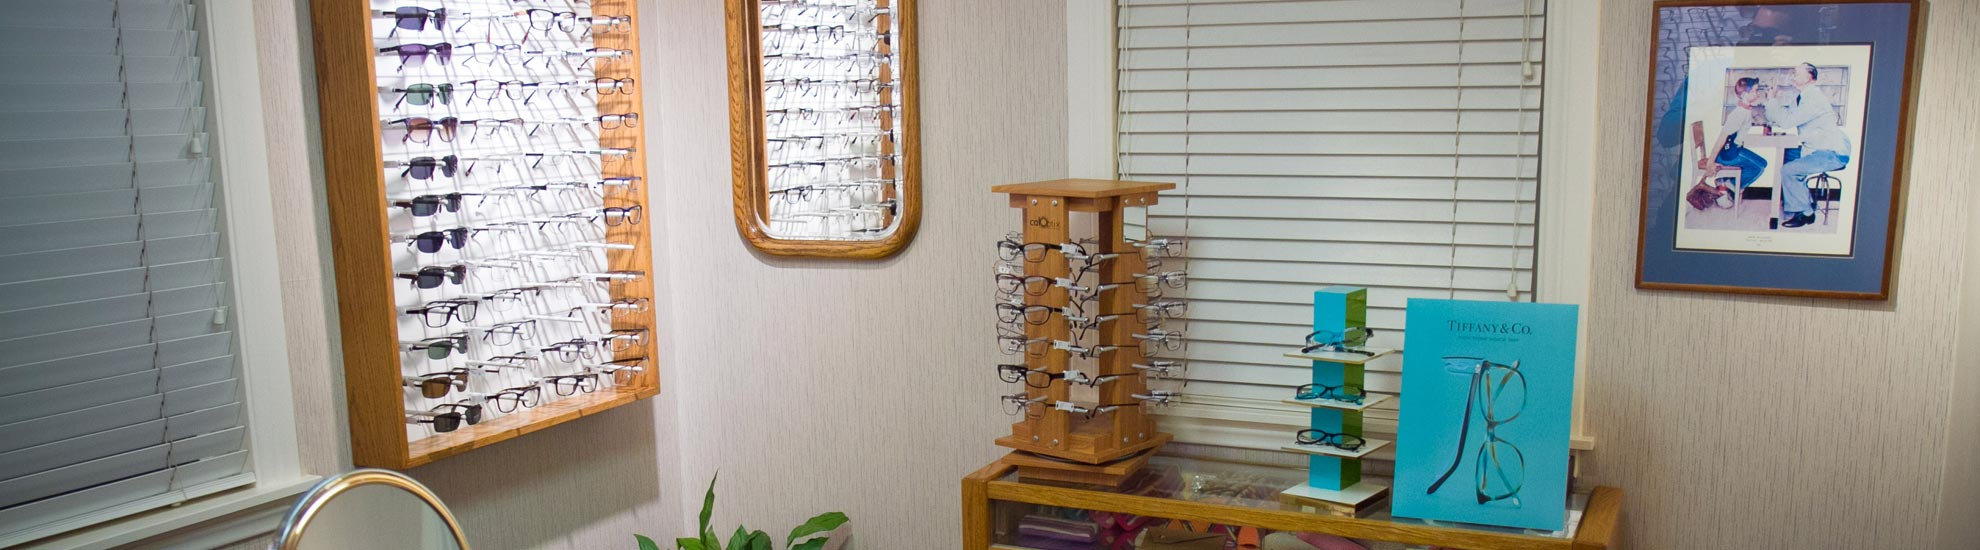 Interior Upland Optometric Center